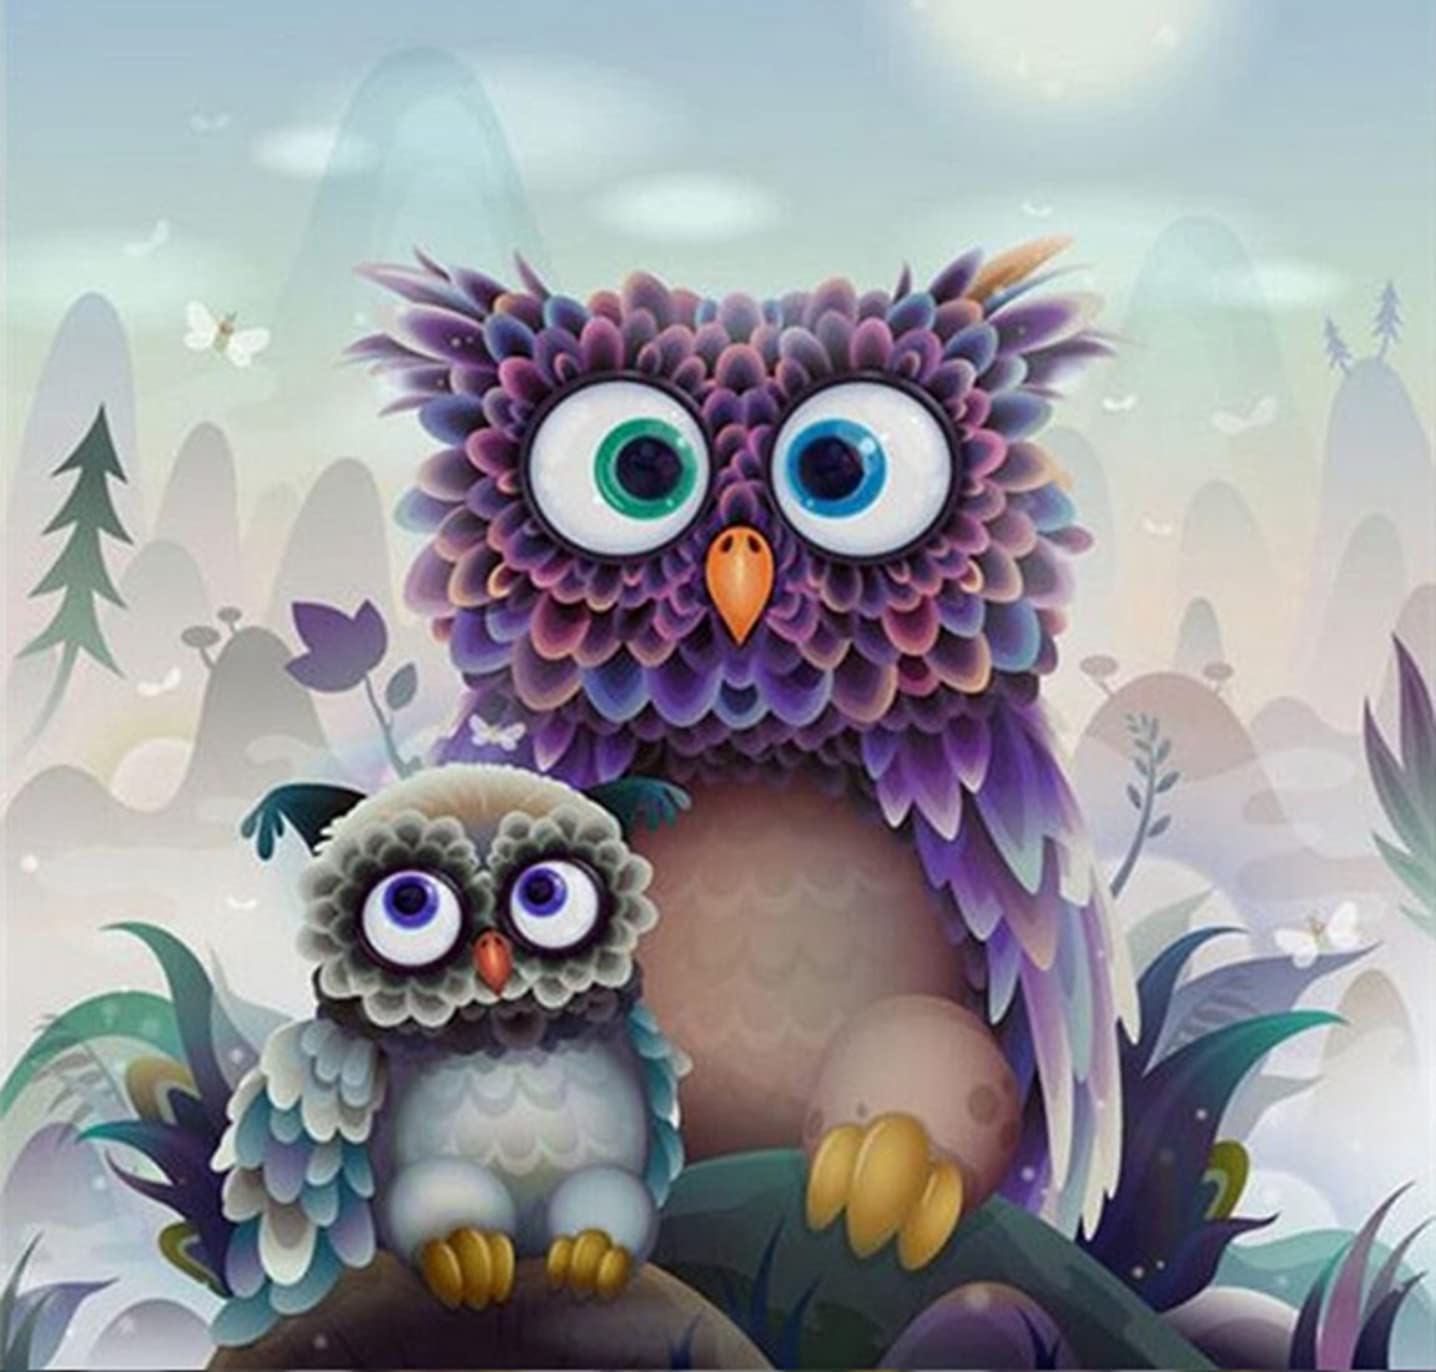 DIY 5D Diamond Painting by Number Kit, Two Owls Crystal Rhinestone Embroidery Cross Stitch Arts Craft Supply Canvas Wall Decor